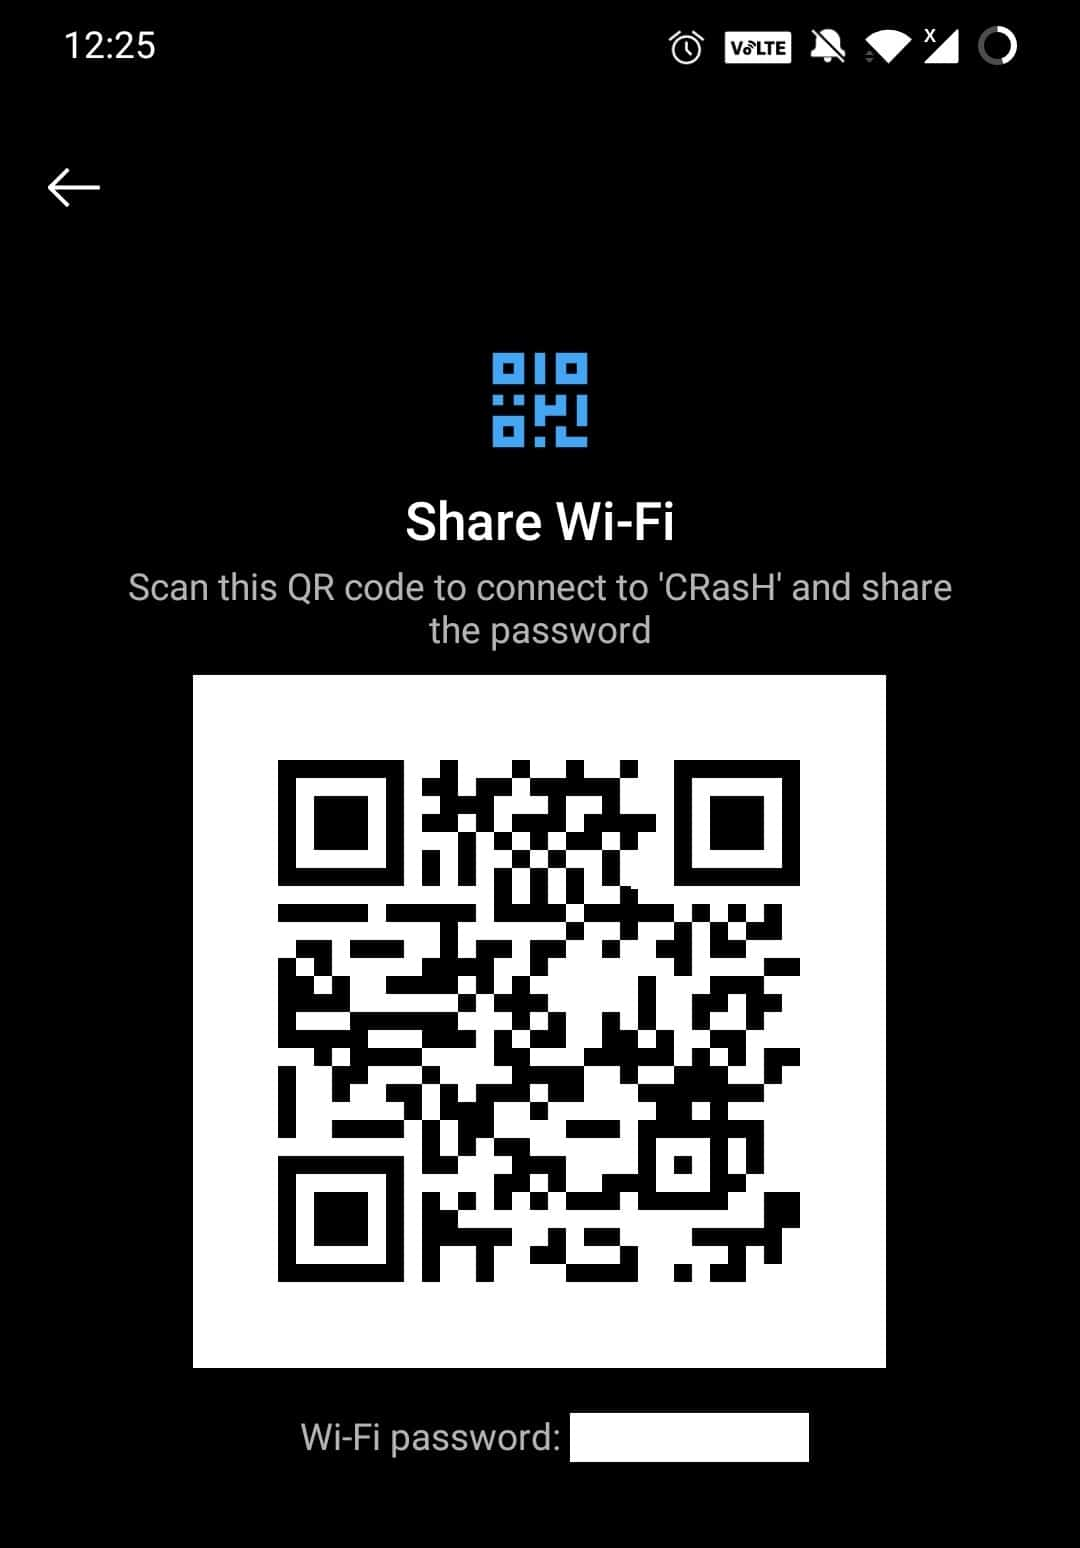 Once verified, you will receive a QR code on the screen